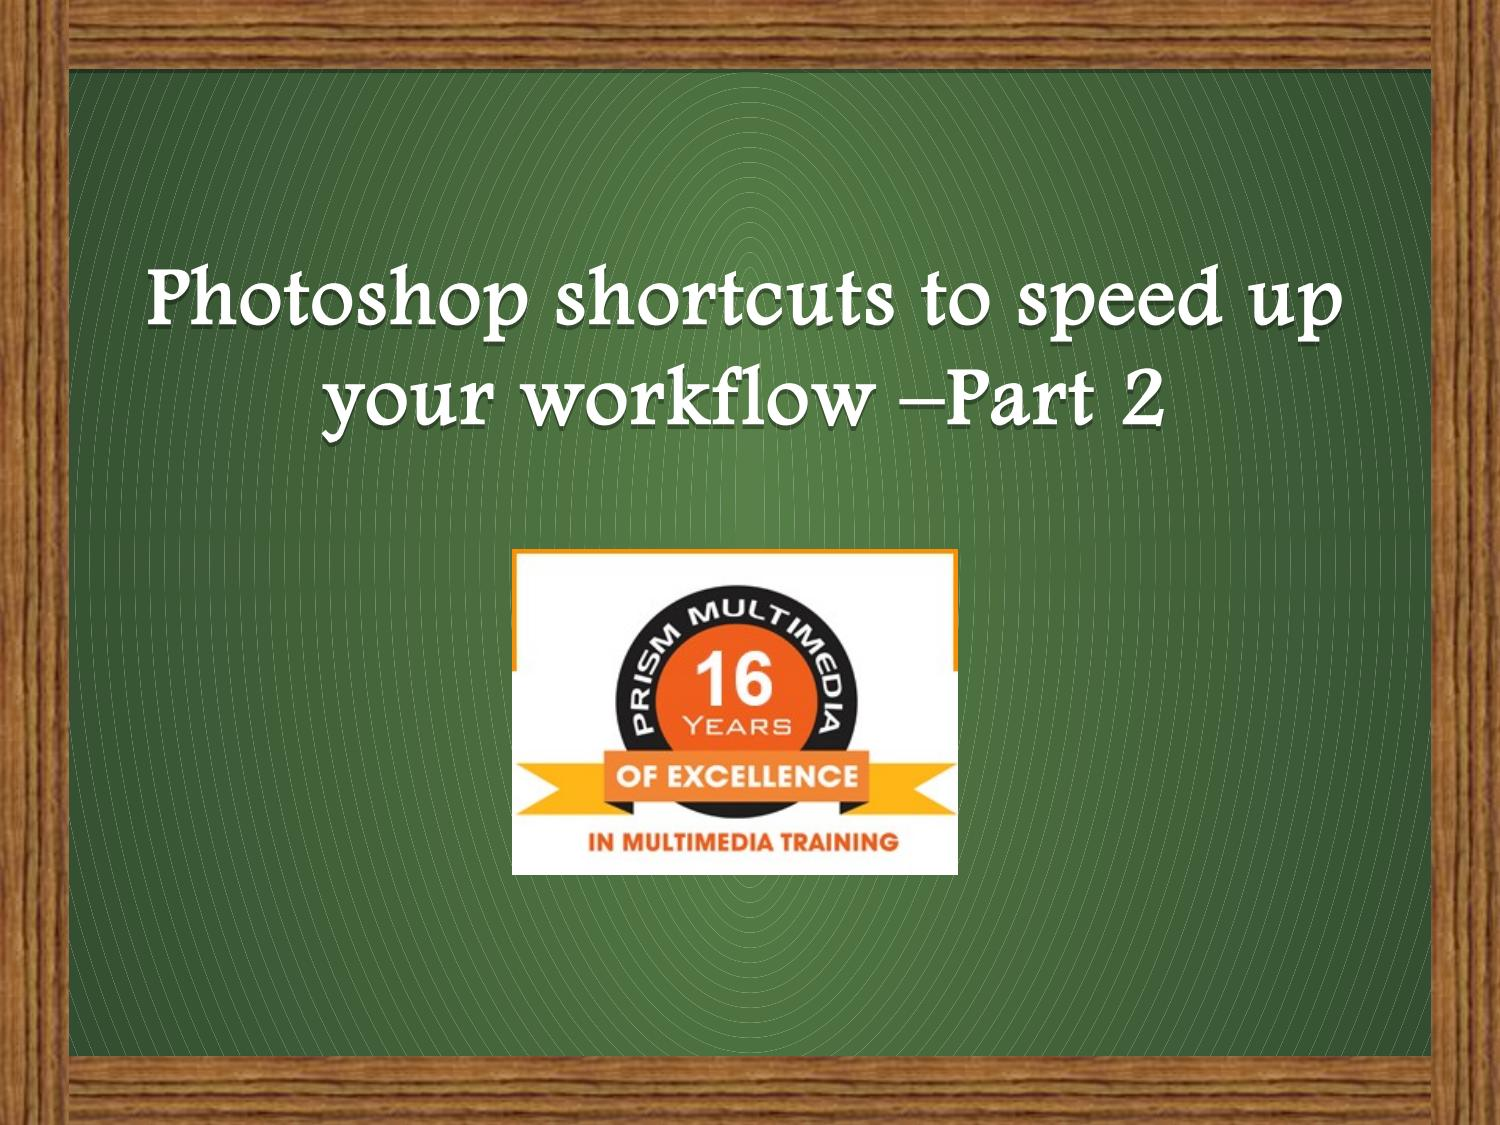 Noble Photoshop Keyboard Shortcuts To Speed Up Your Workflow Prism Multimediaby Prismmultimedia Issuu Photoshop Keyboard Shortcuts To Speed Up Your Workflow Prism dpreview How To Invert Selection In Photoshop